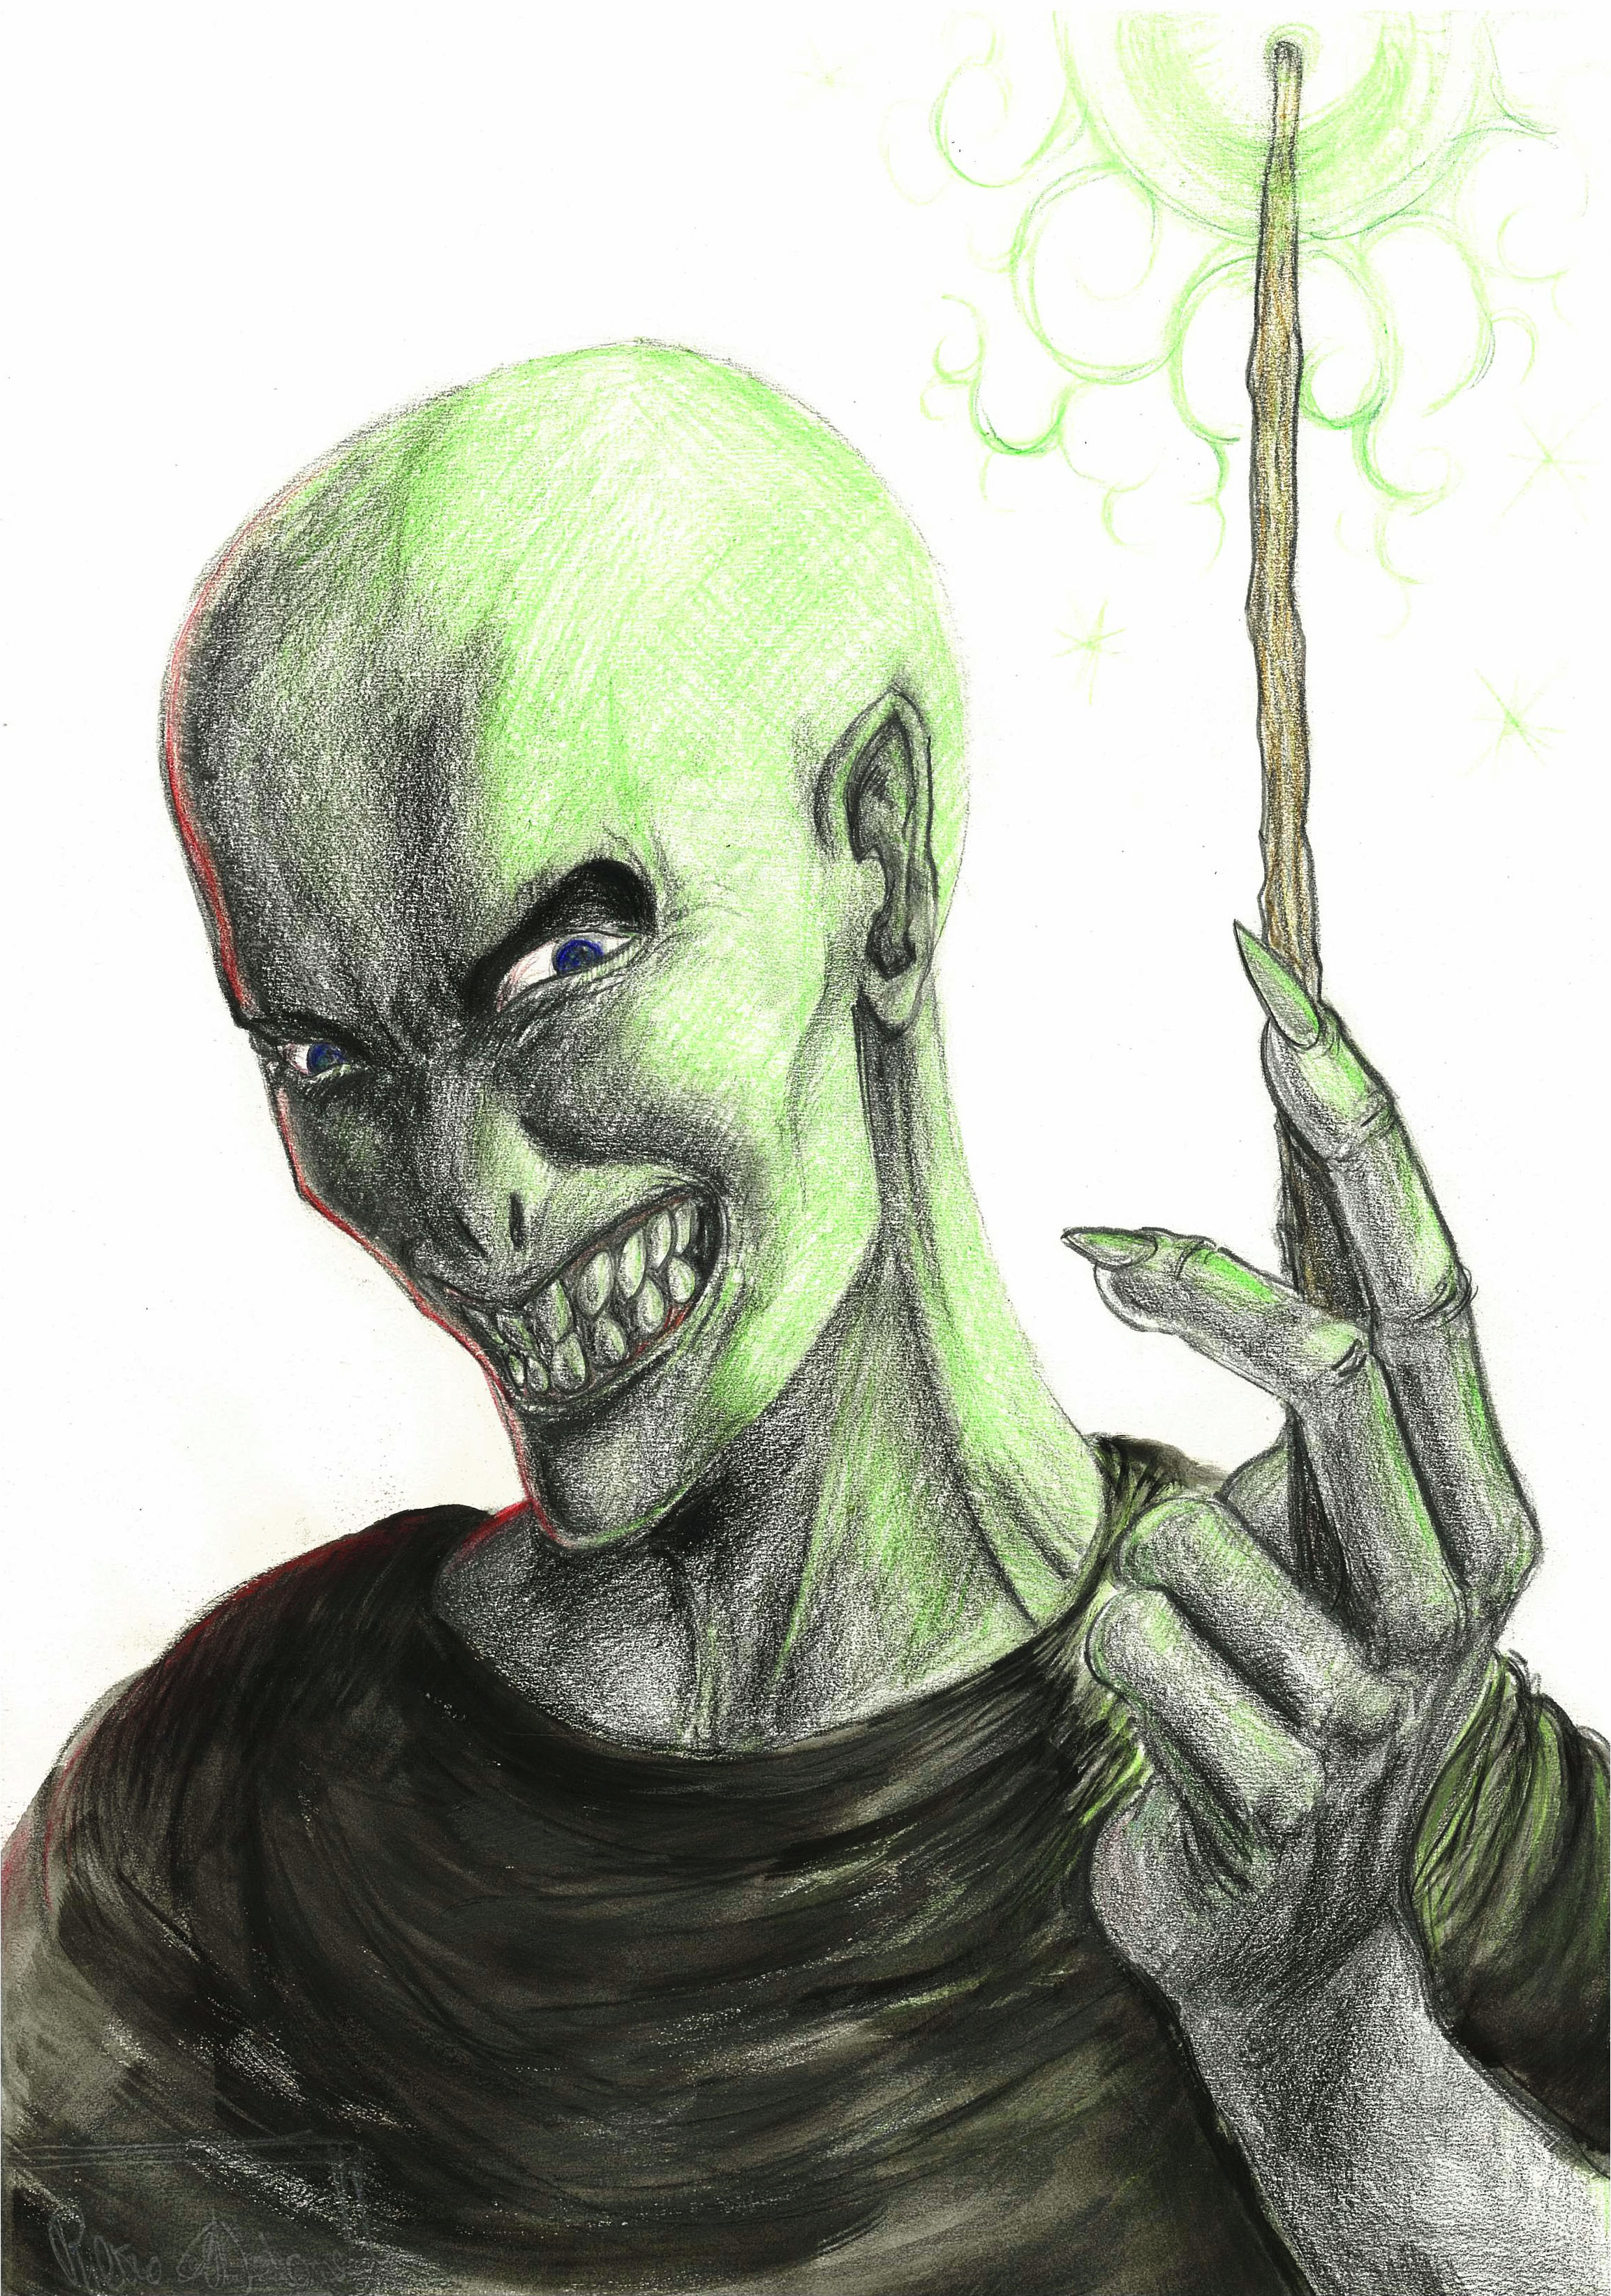 All hail Lord Voldemort by zobly